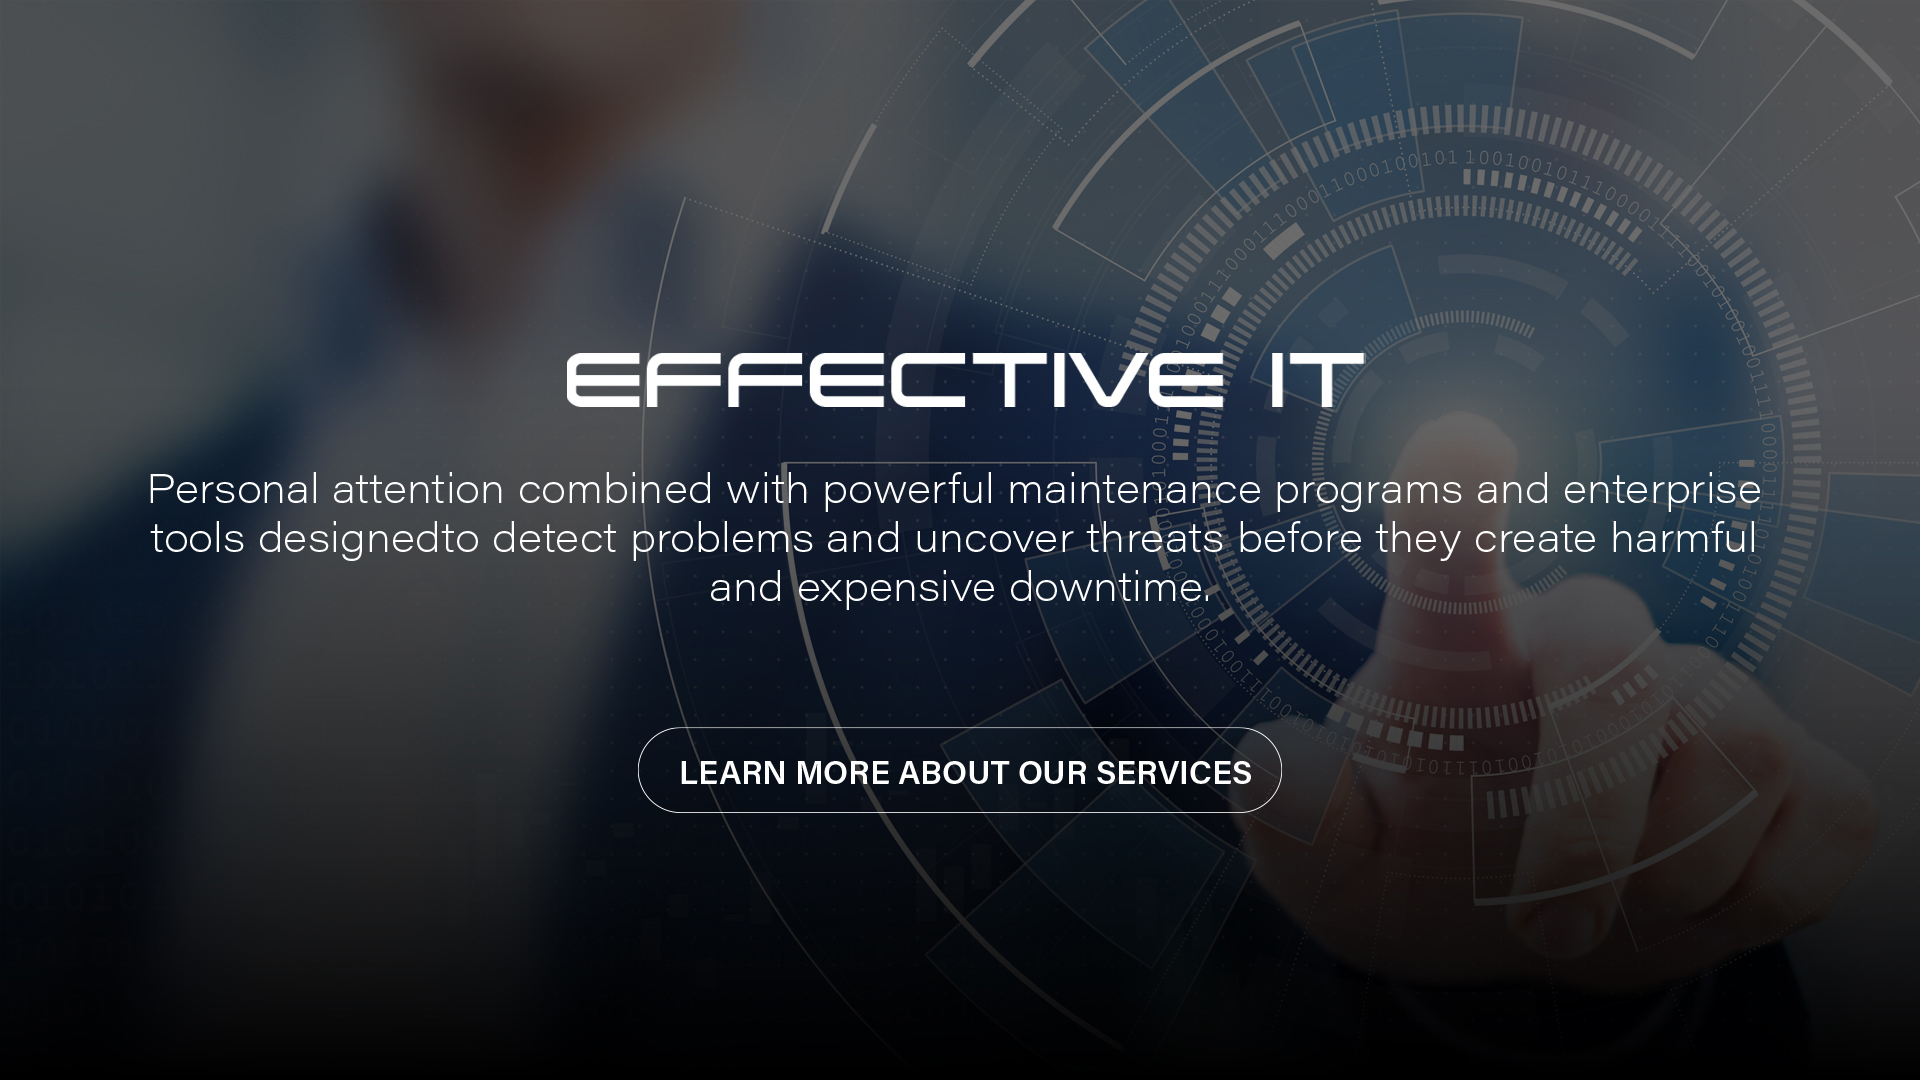 Effective IT | Personal attention combined with powerful maintenance programs and enterprise tools designed to detect problems and uncover threats before they create harmful and expensive downtime.